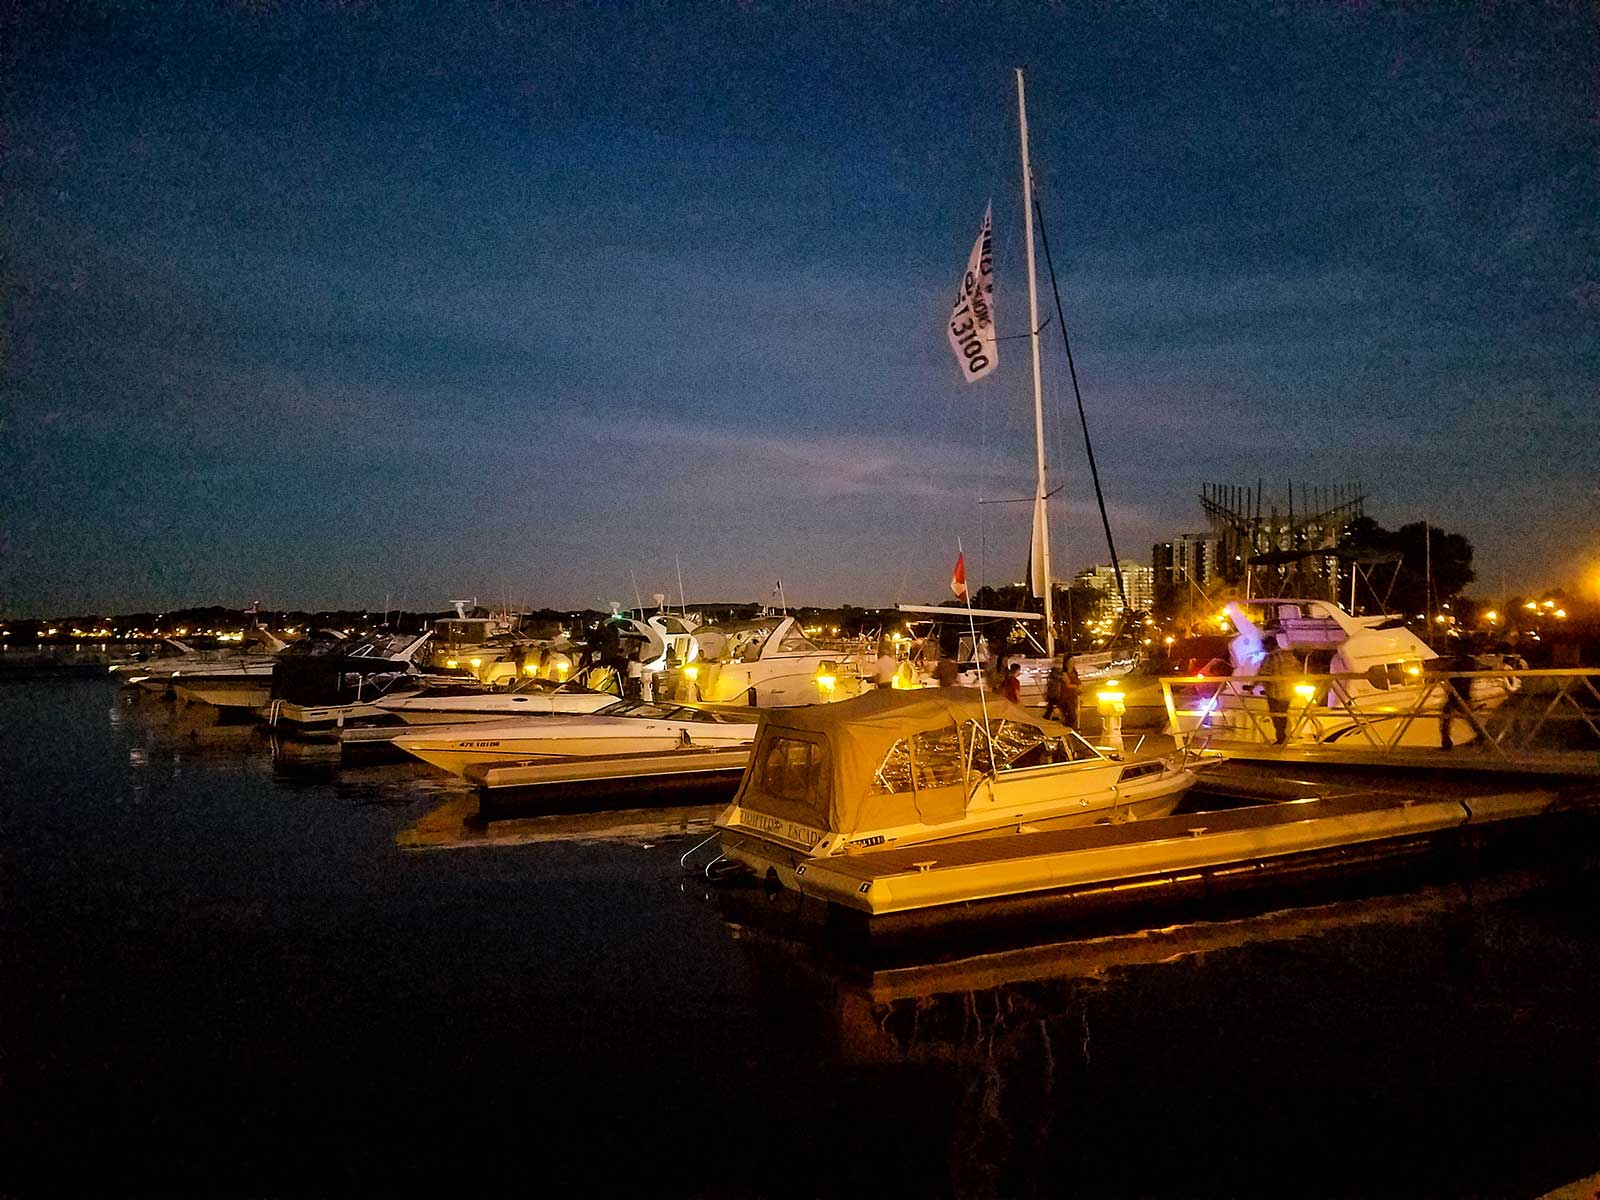 City of Barrie Marina at night